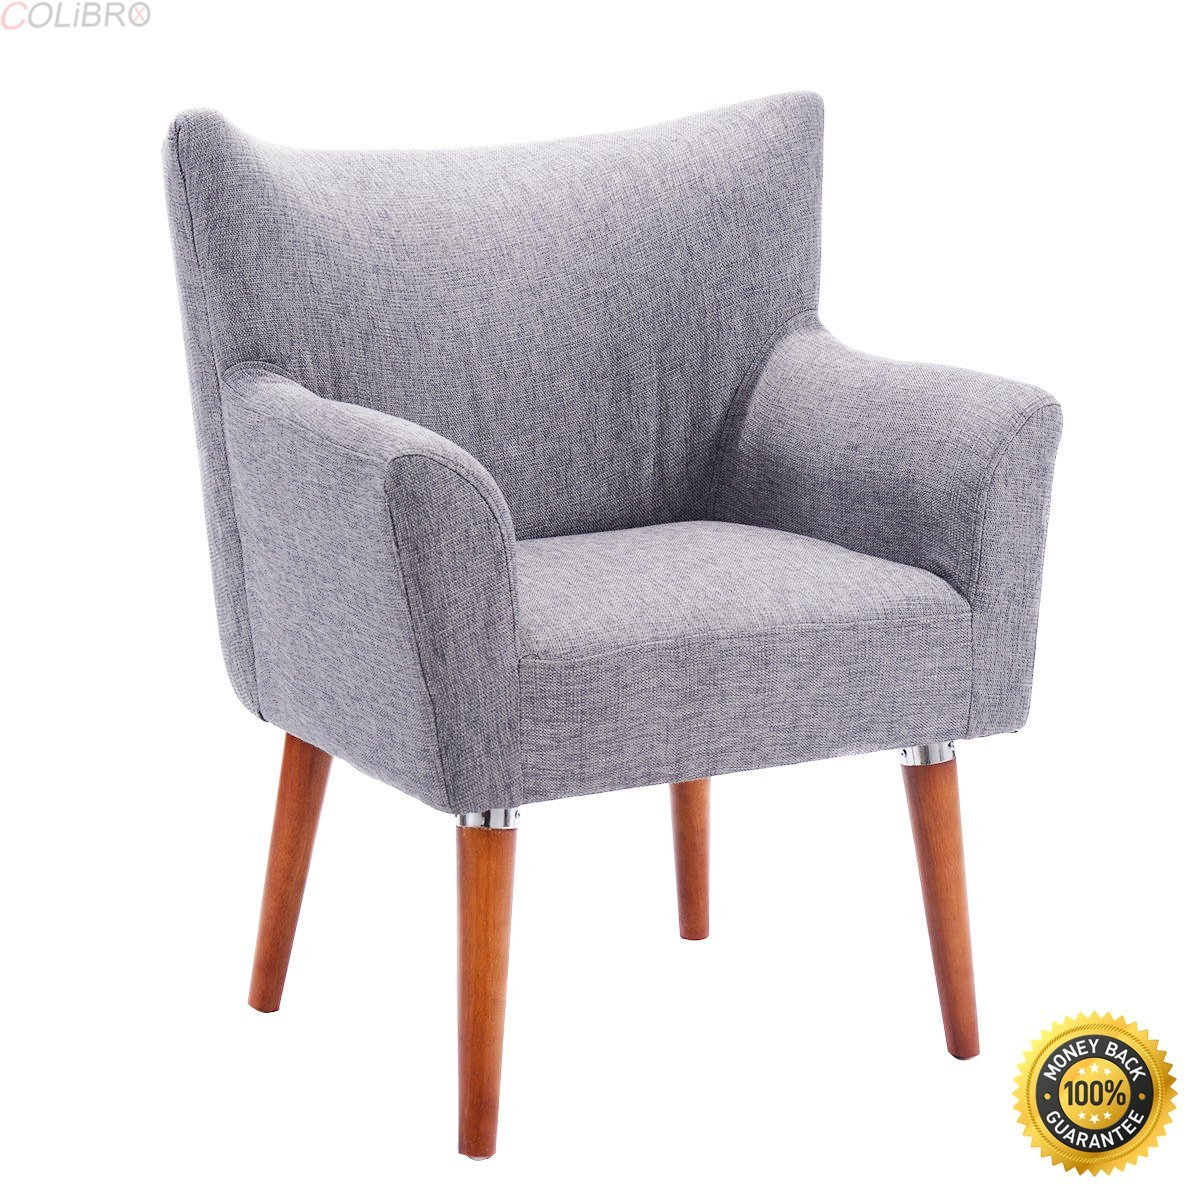 Buy Colibrox Modern Accent Arm Chair Single Sofa Seat